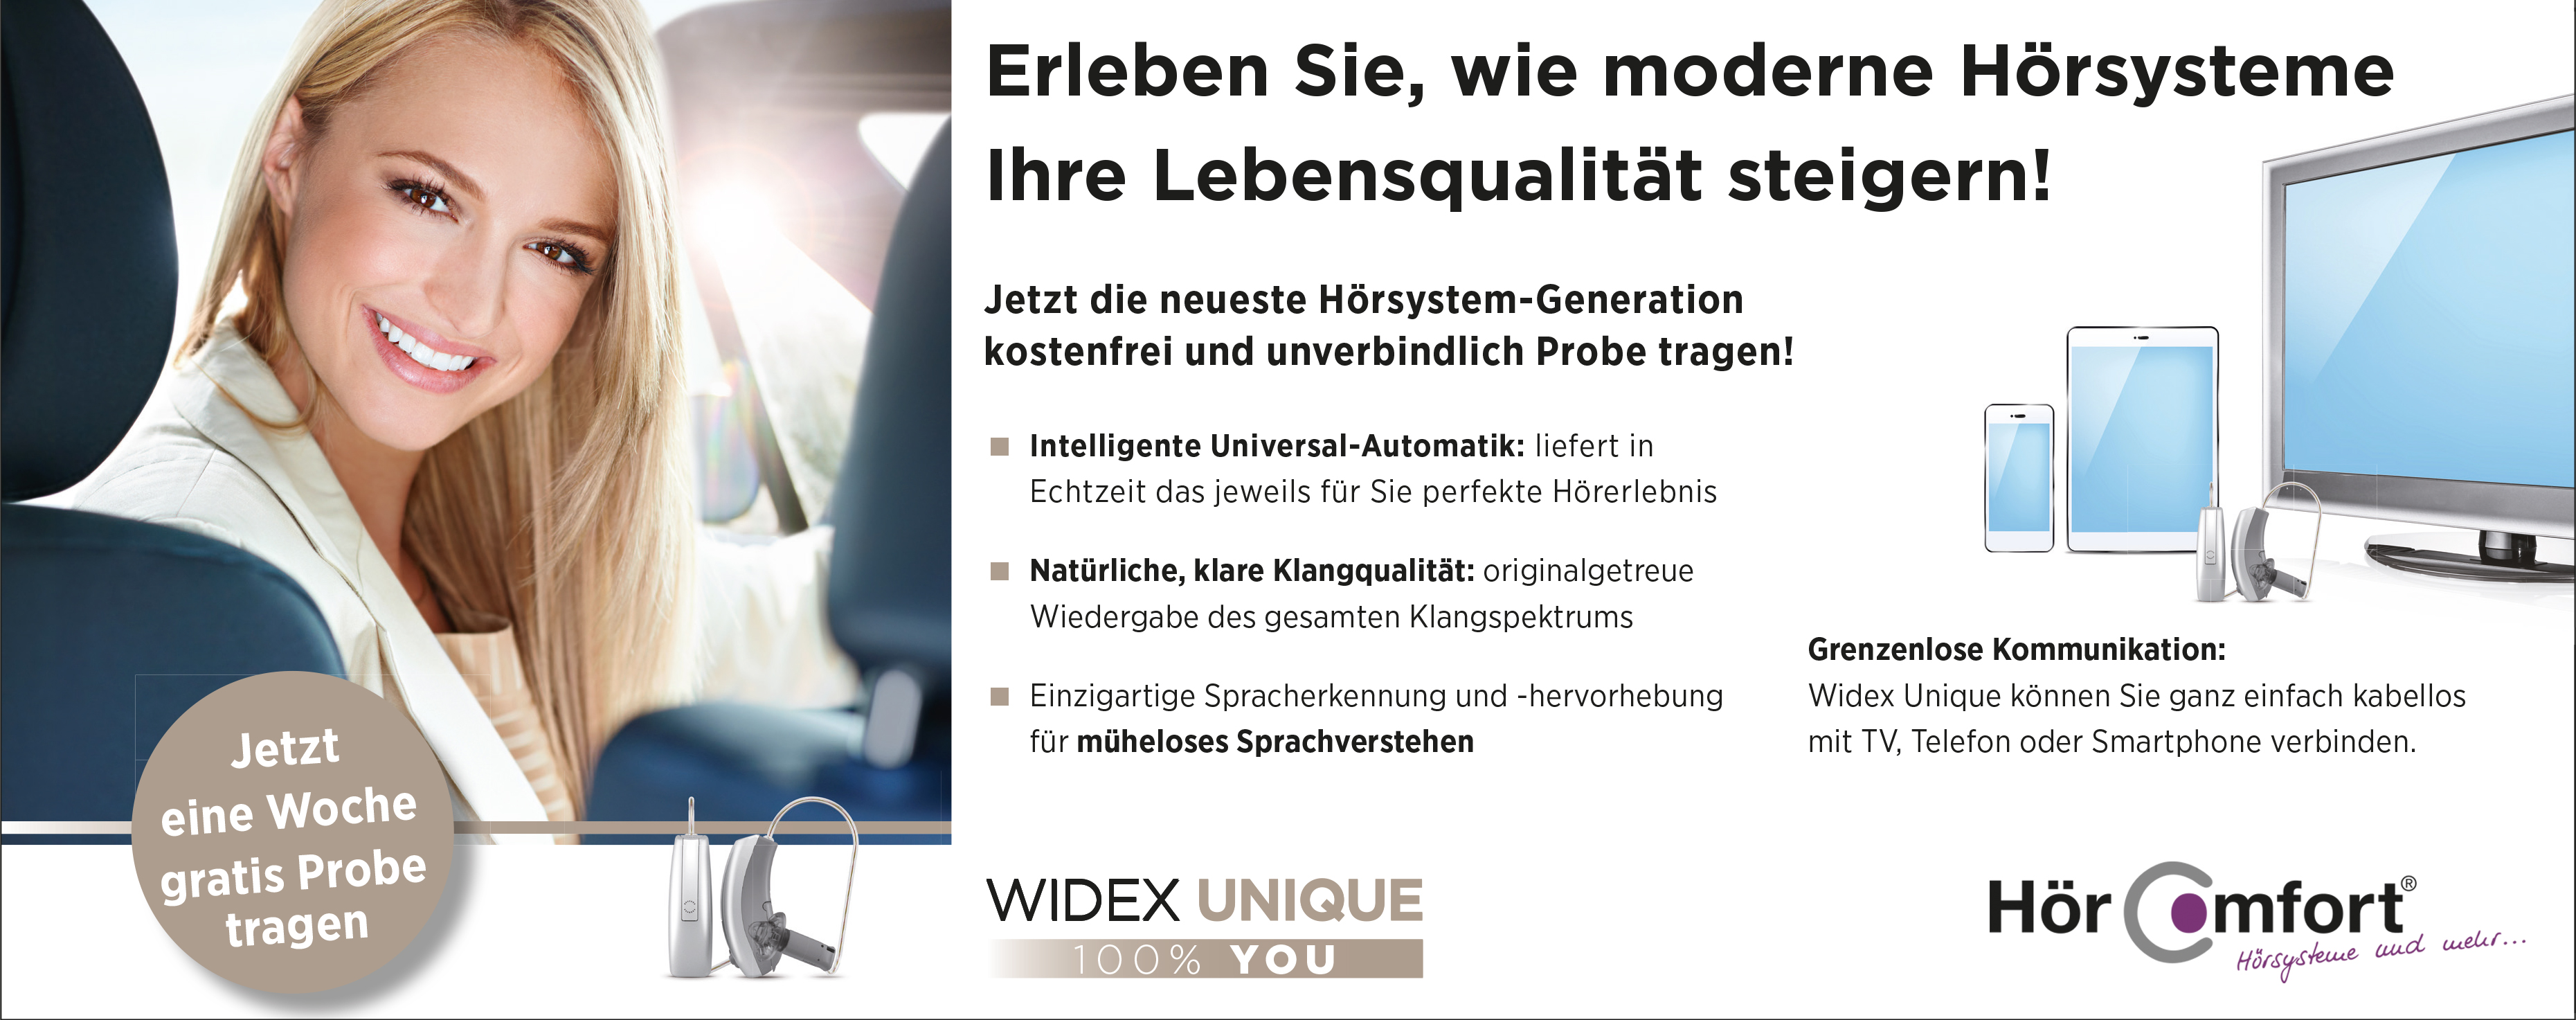 Widex-Unique-bei-HörComfort_2Lang